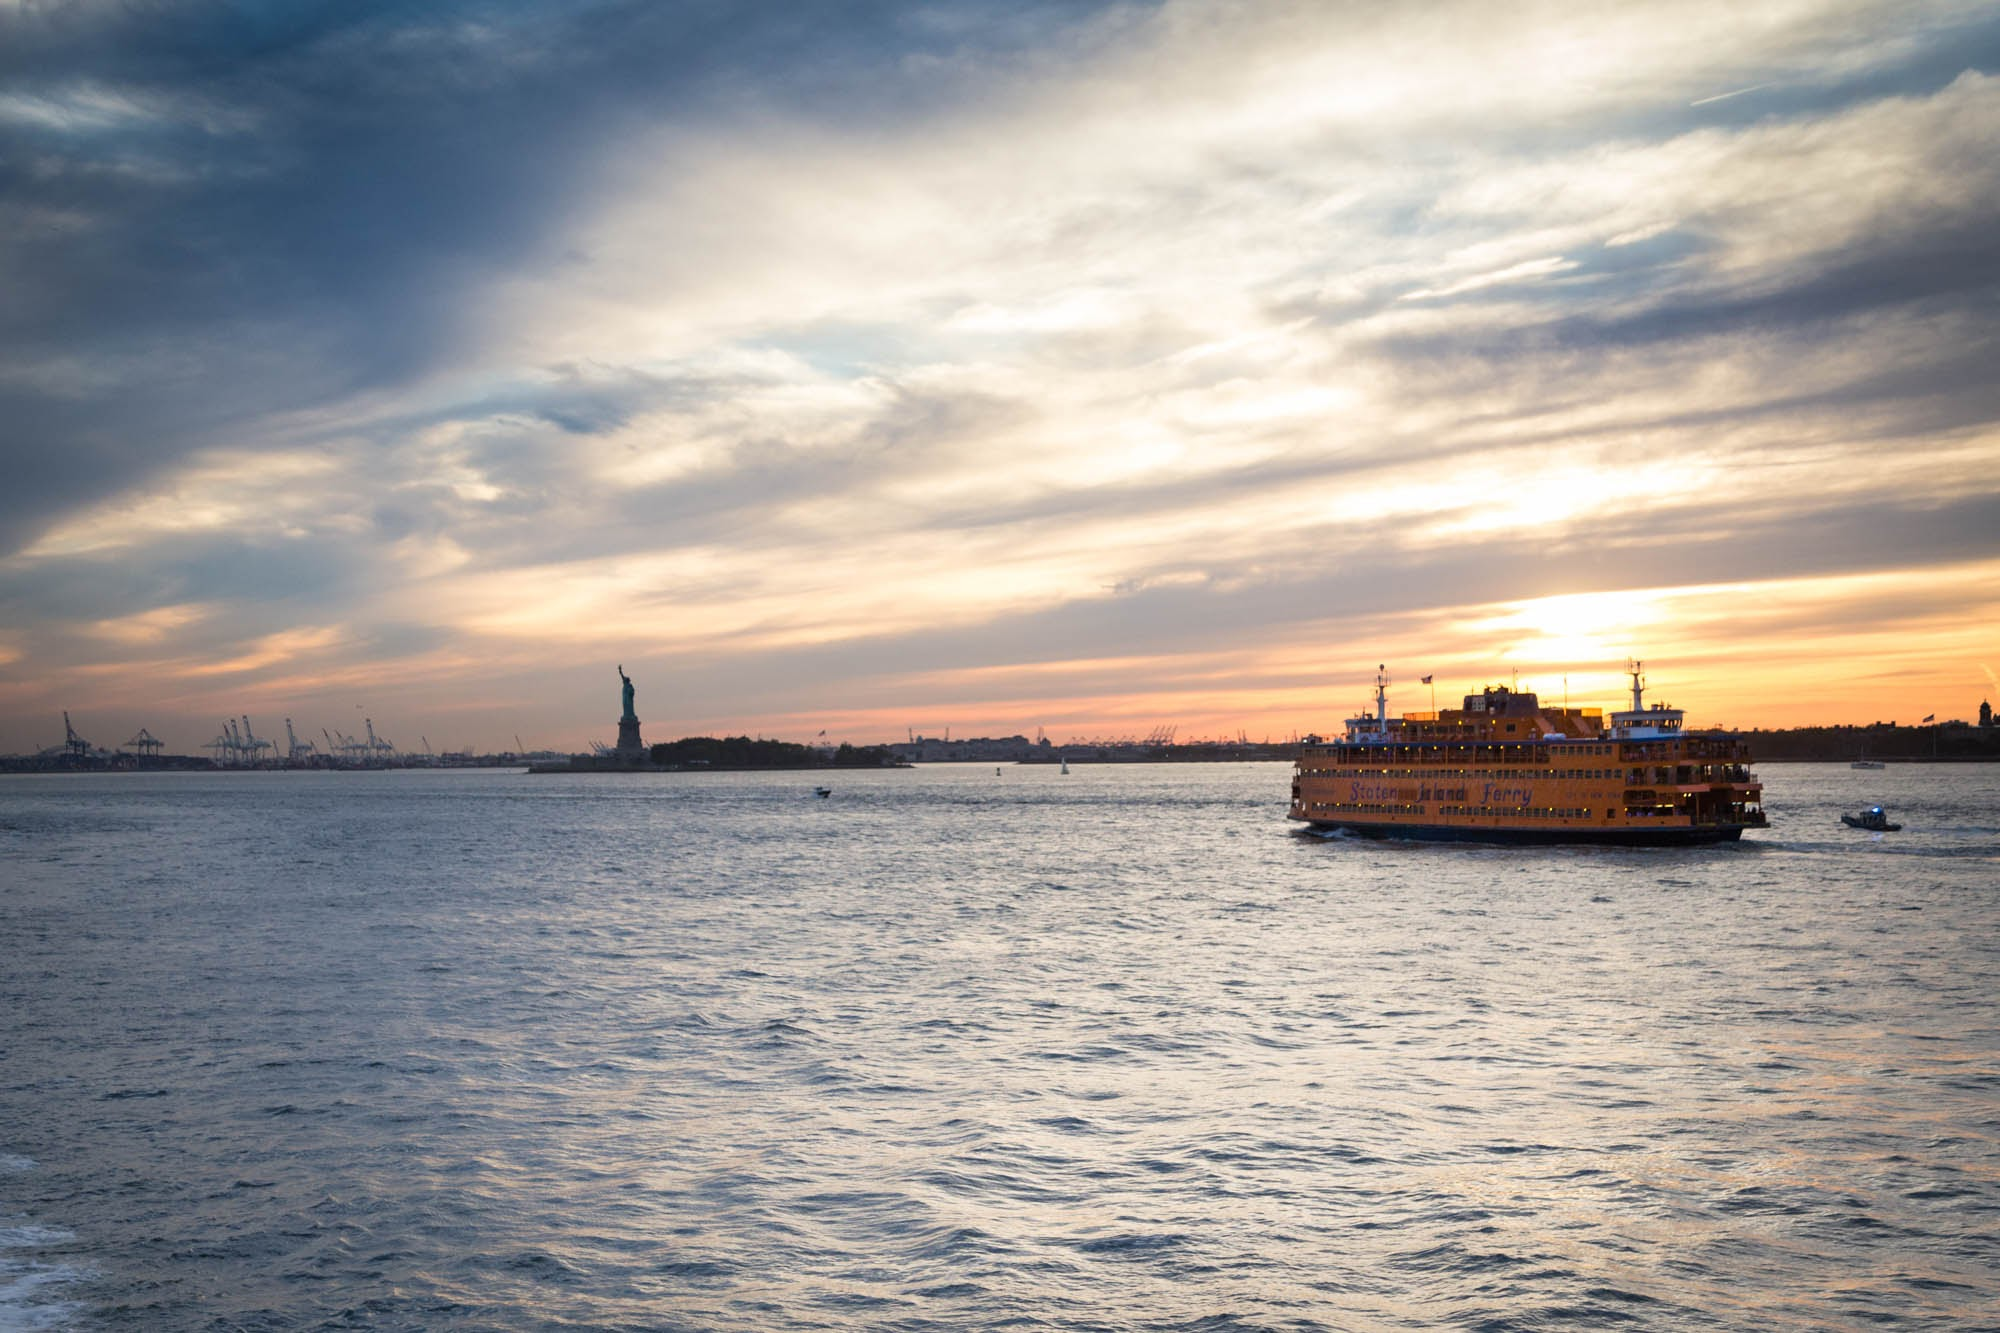 The Staten Island Ferry at sunset.